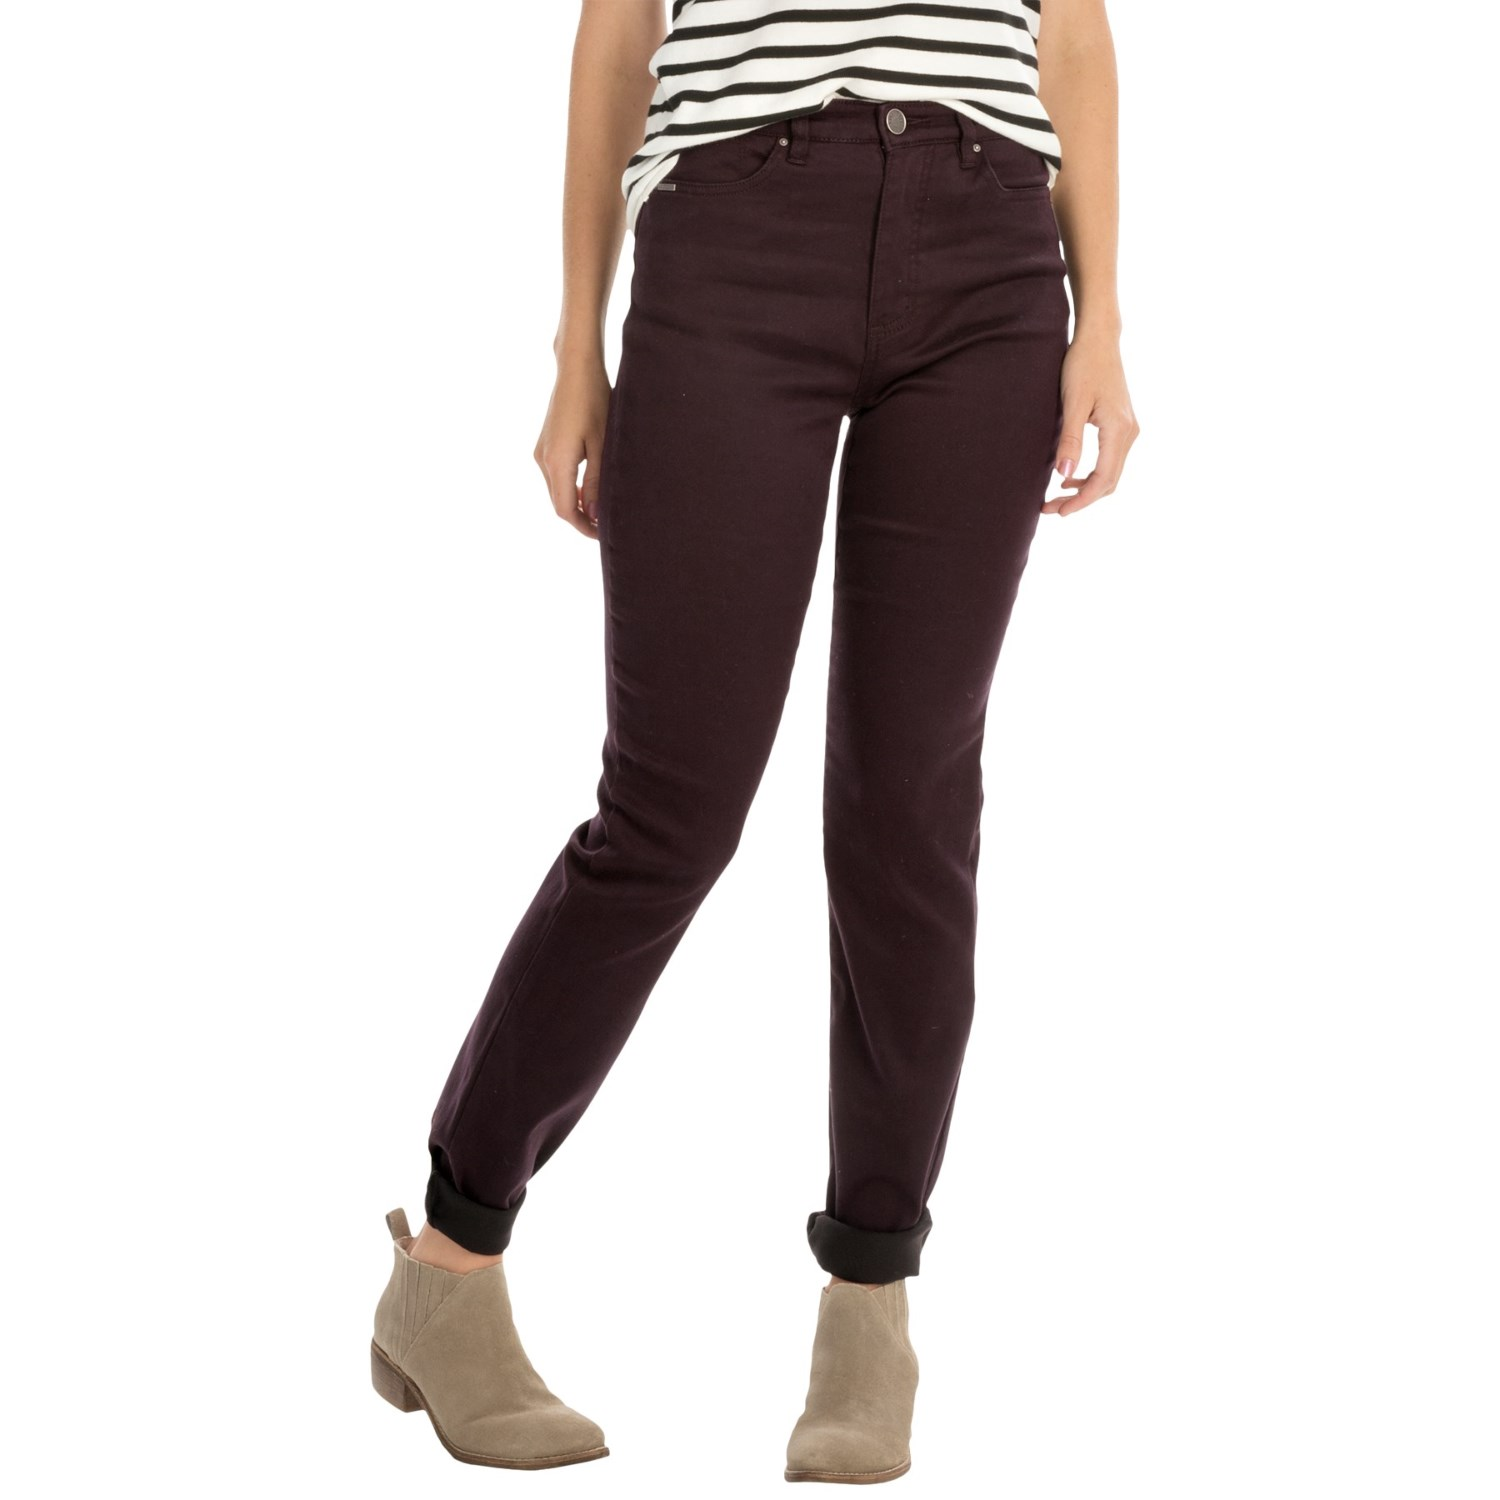 Clothes for slim women